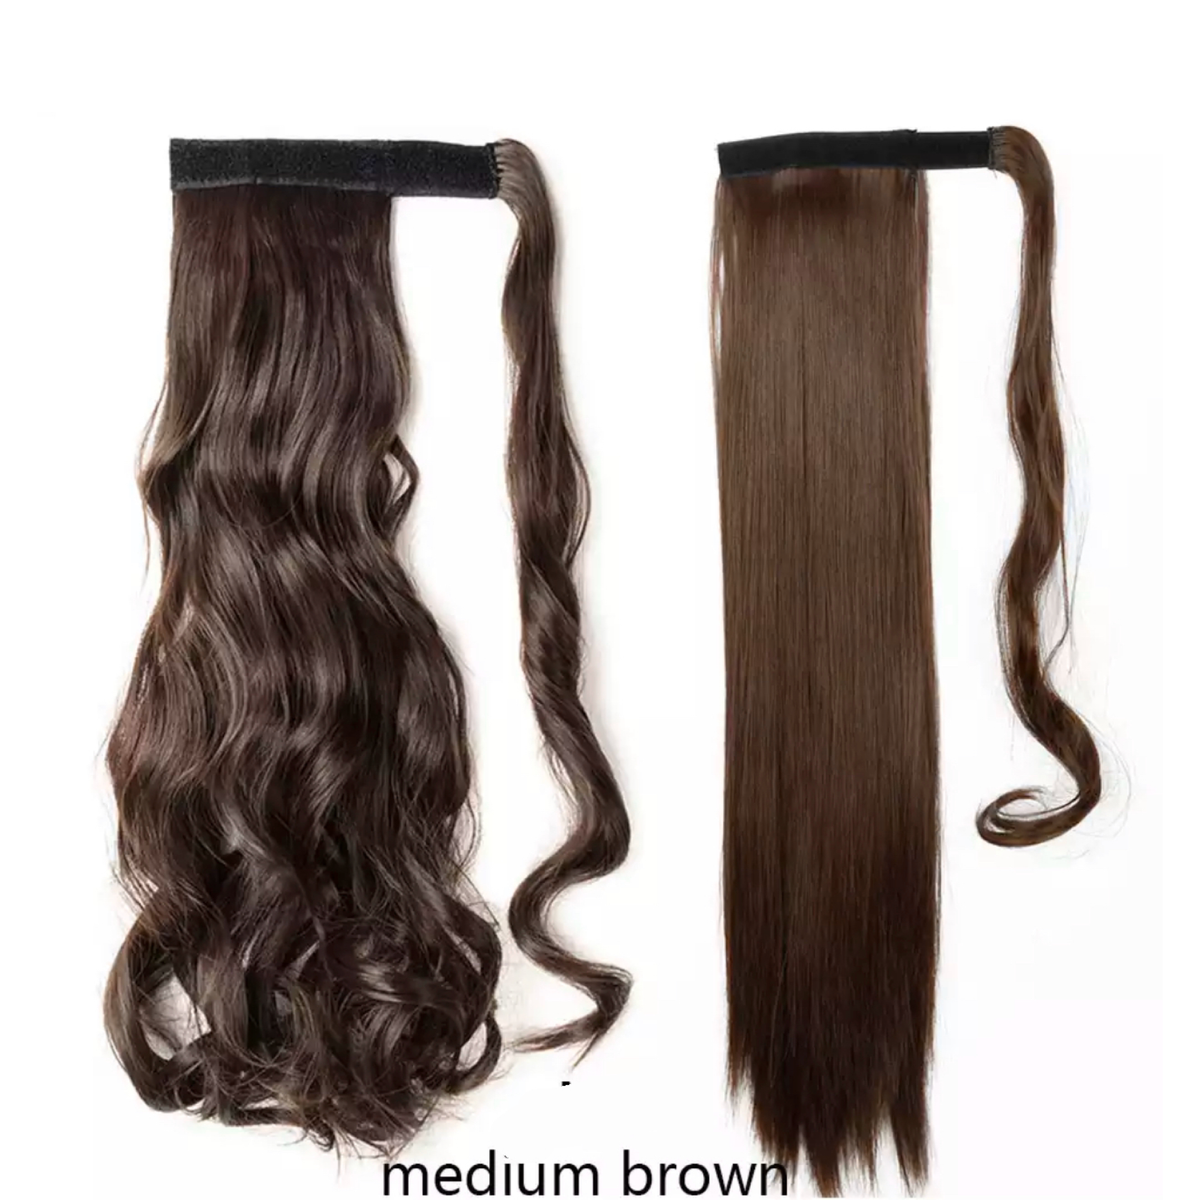 Medium Brown Ponytail Hair Extension - lexinoelbeauty.com